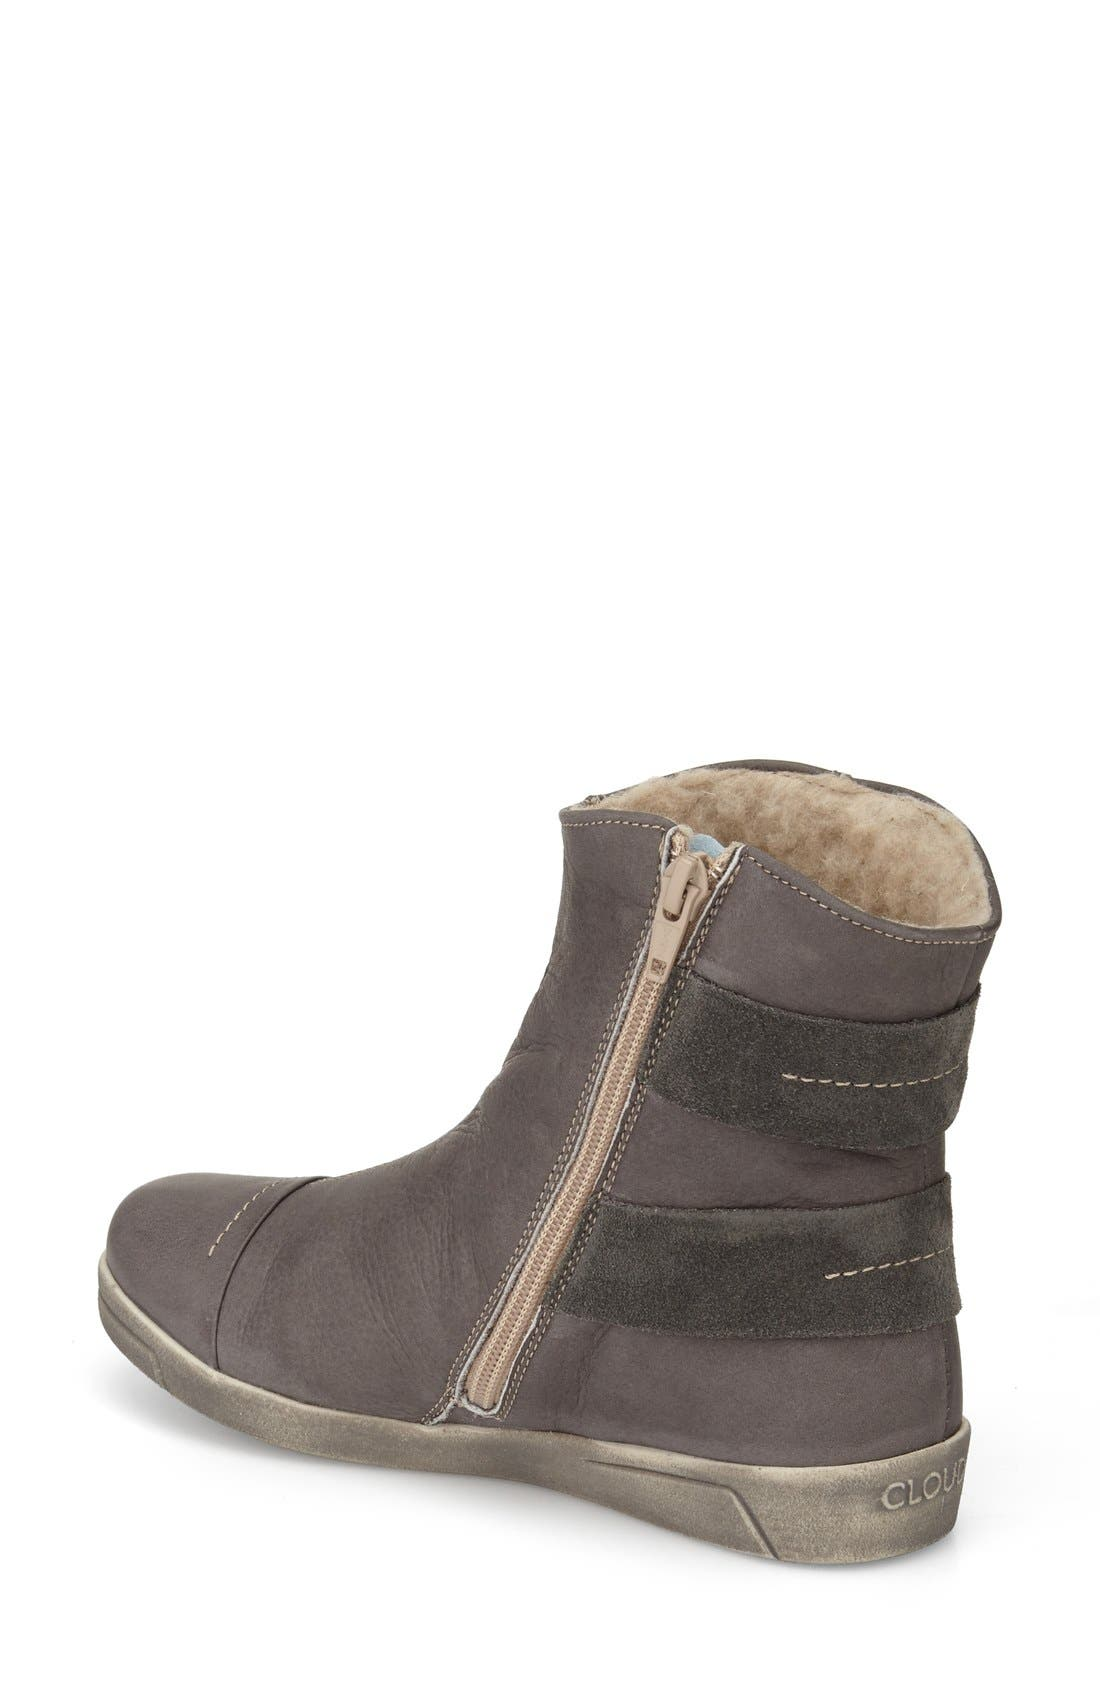 'Aline' Faux Shearling Lined Bootie,                             Alternate thumbnail 2, color,                             Dark Grey Leather